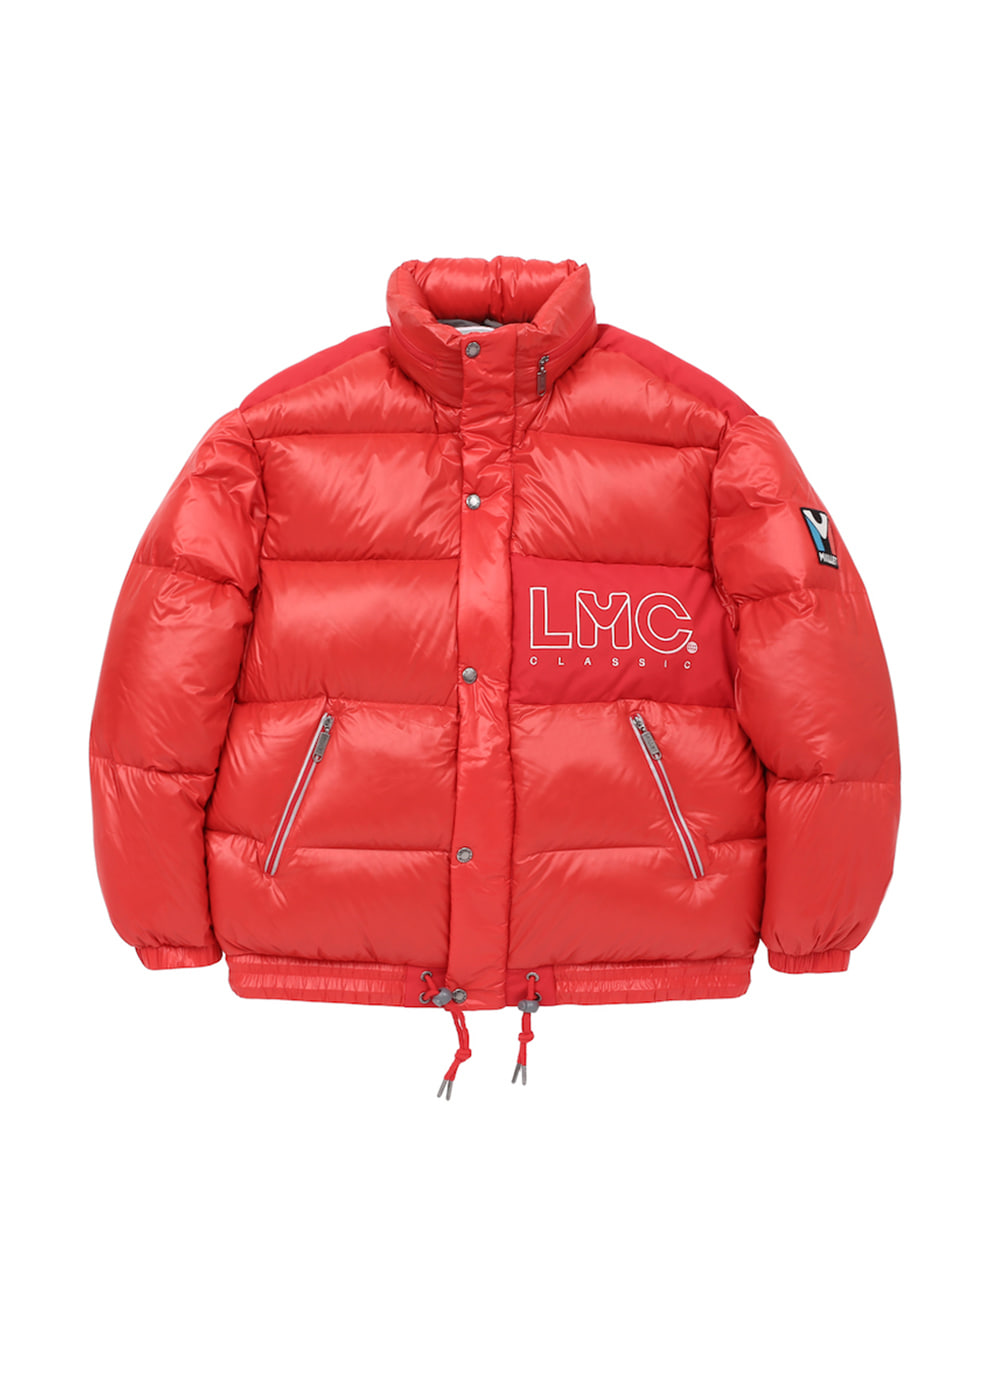 MILLET x LMC RETRO DOUDOUNE DOWN JACKET red